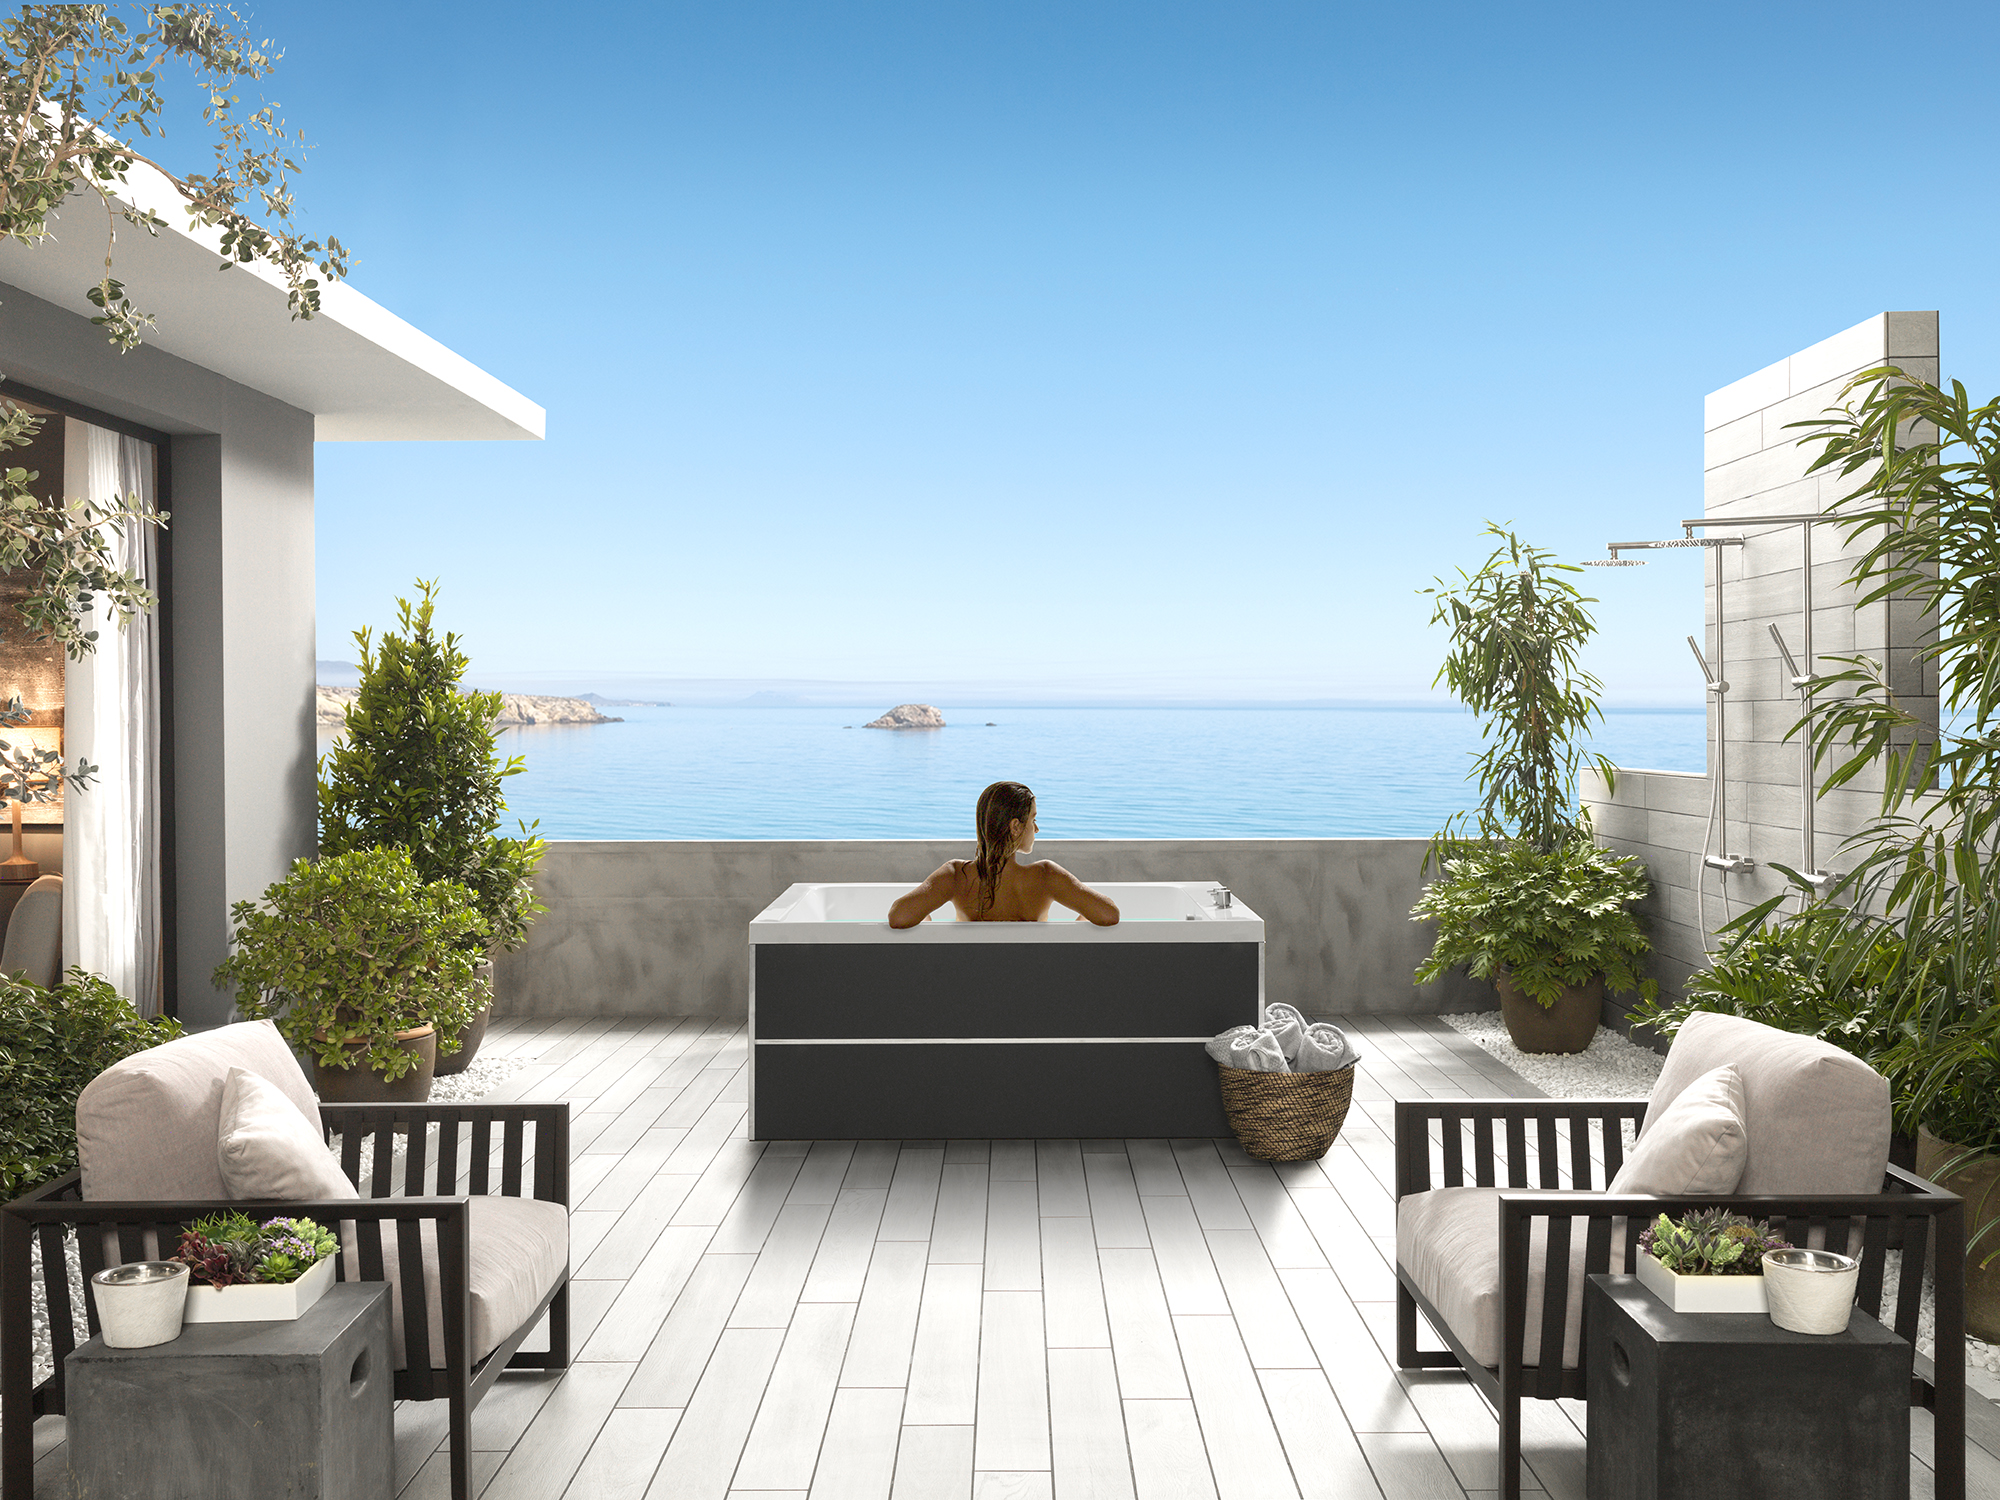 Outdoor bathtubs: the new bathroom experience. Pleasurable moments under the sky